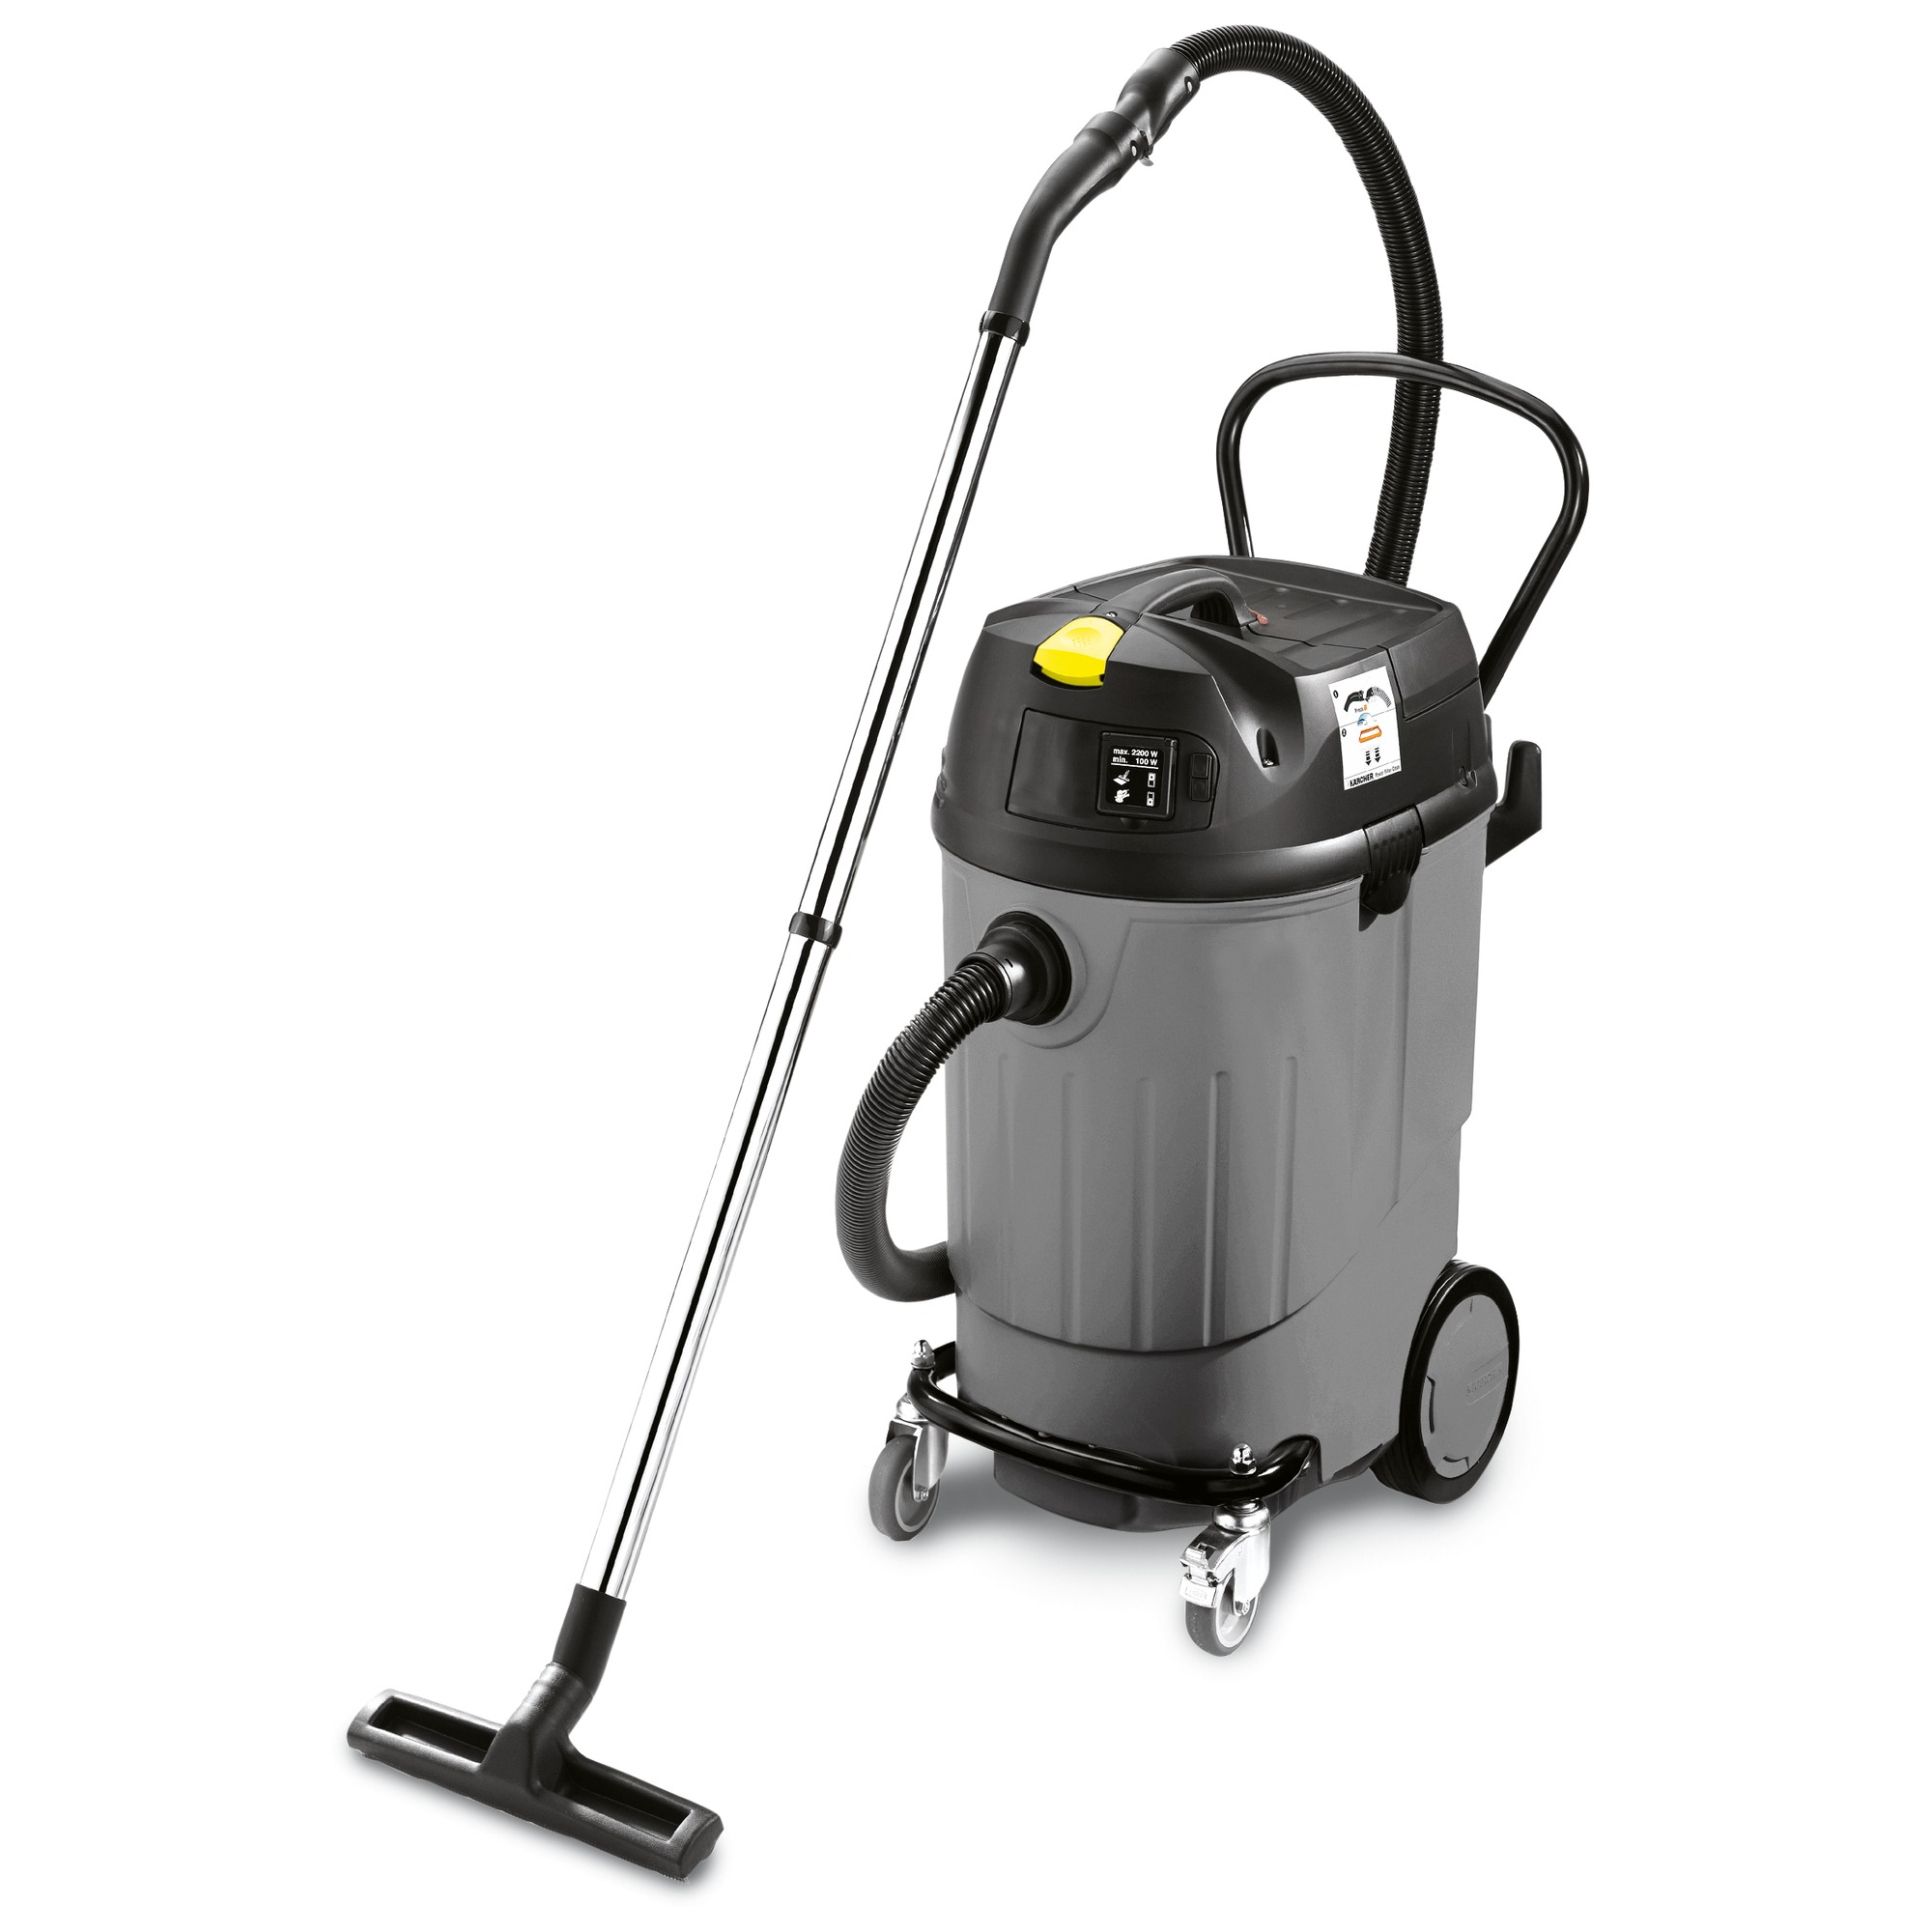 NT 611 Eco K      1.146-209.0 KARCHER - KARCHER PREMIER CENTER